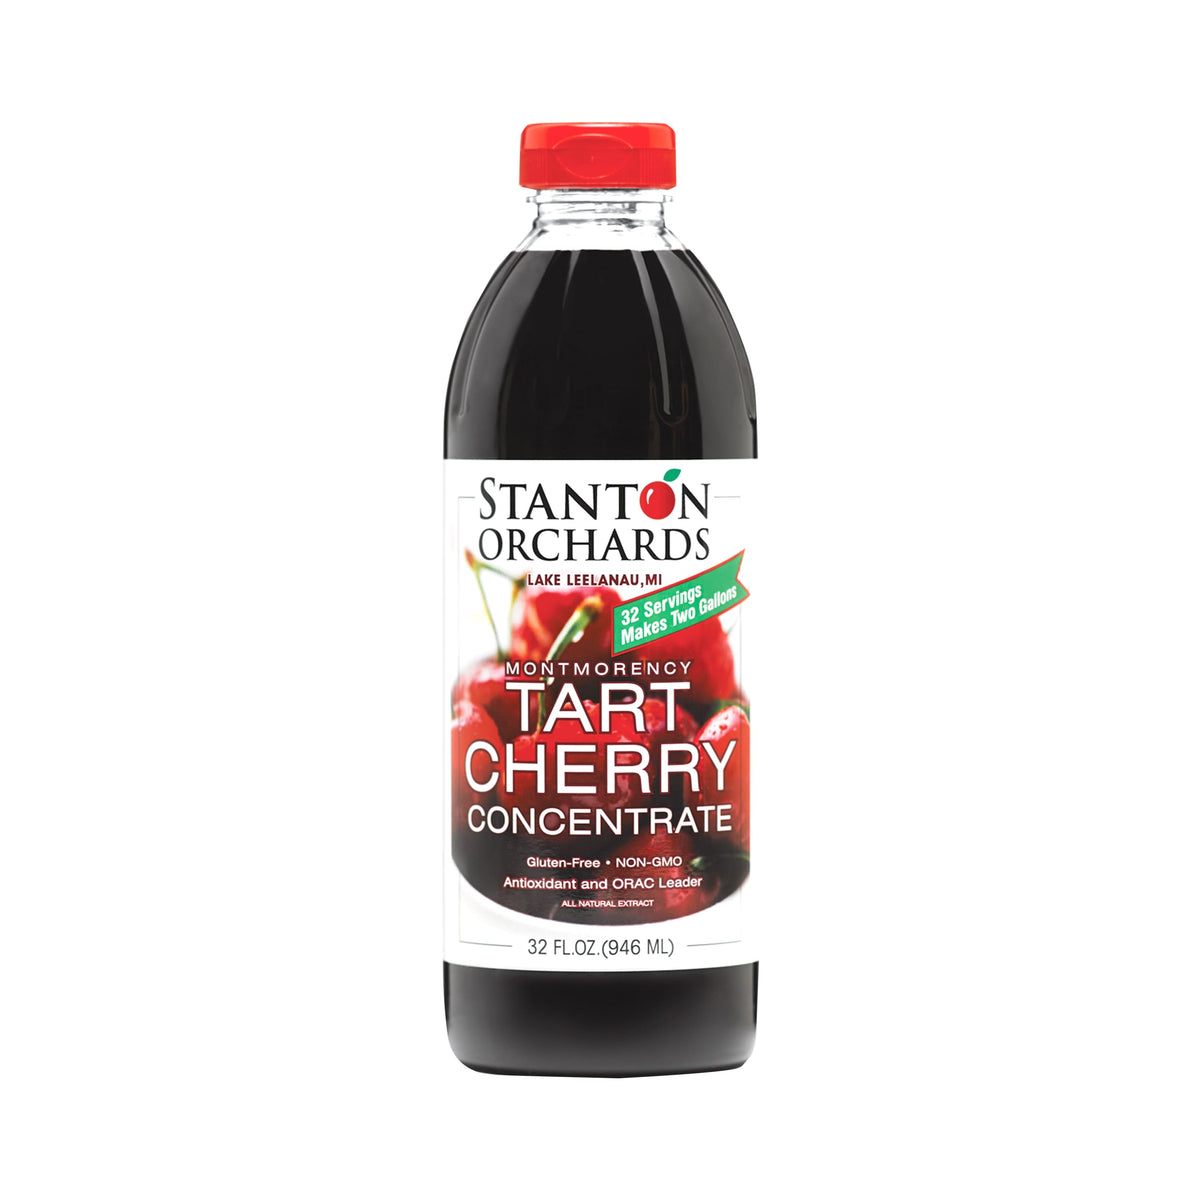 32 oz. Bottle of Tart Cherry Concentrate